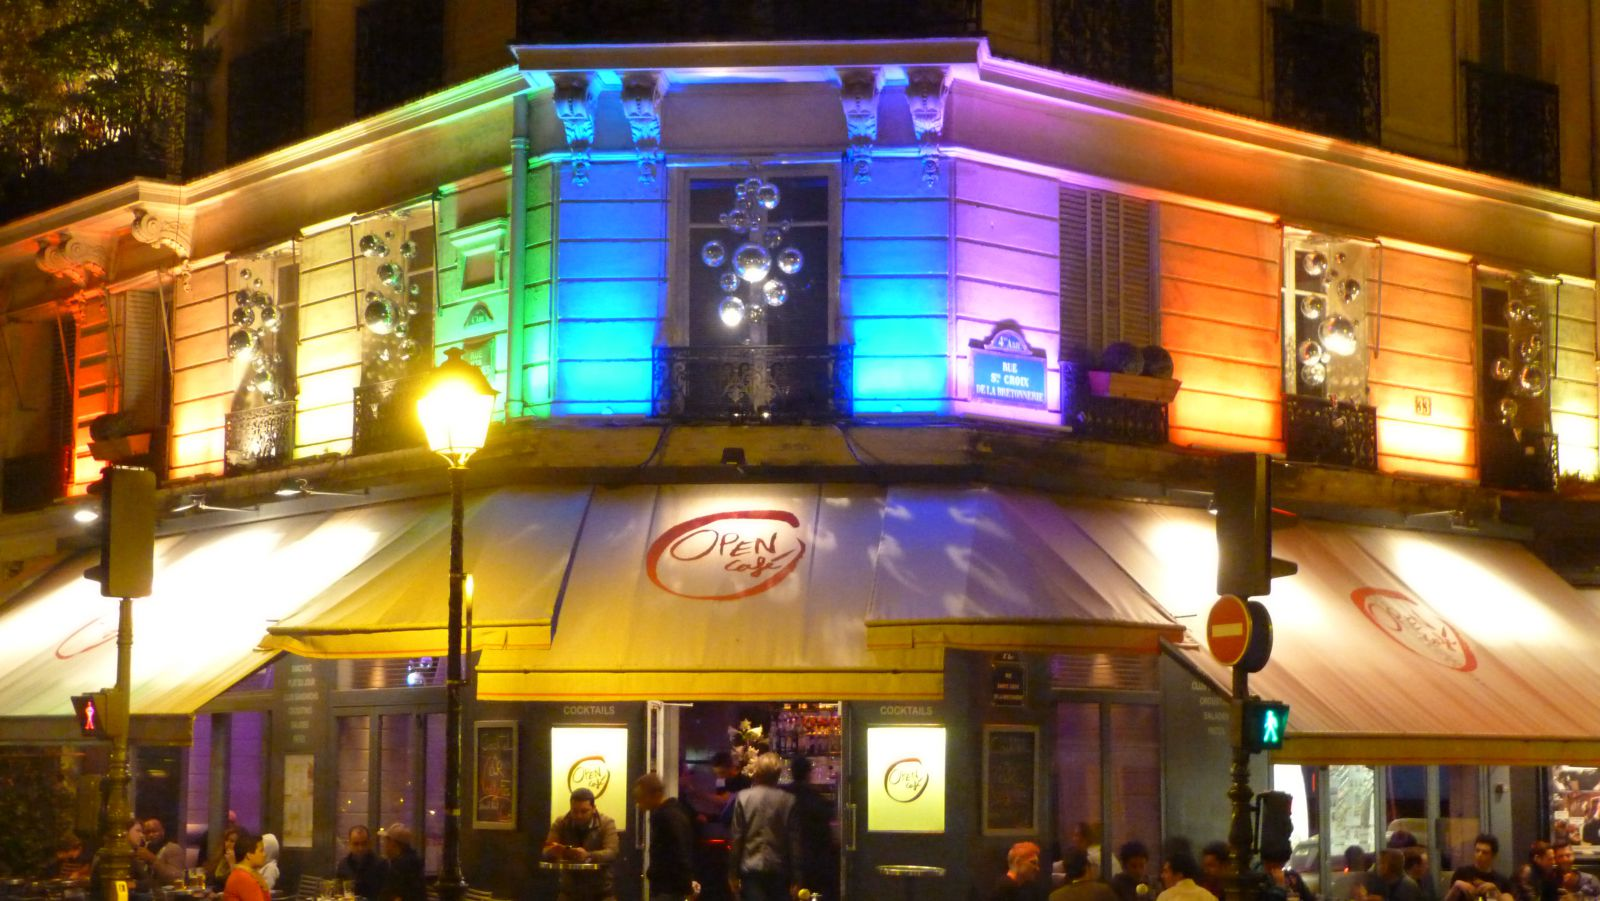 Paris pigalle gay